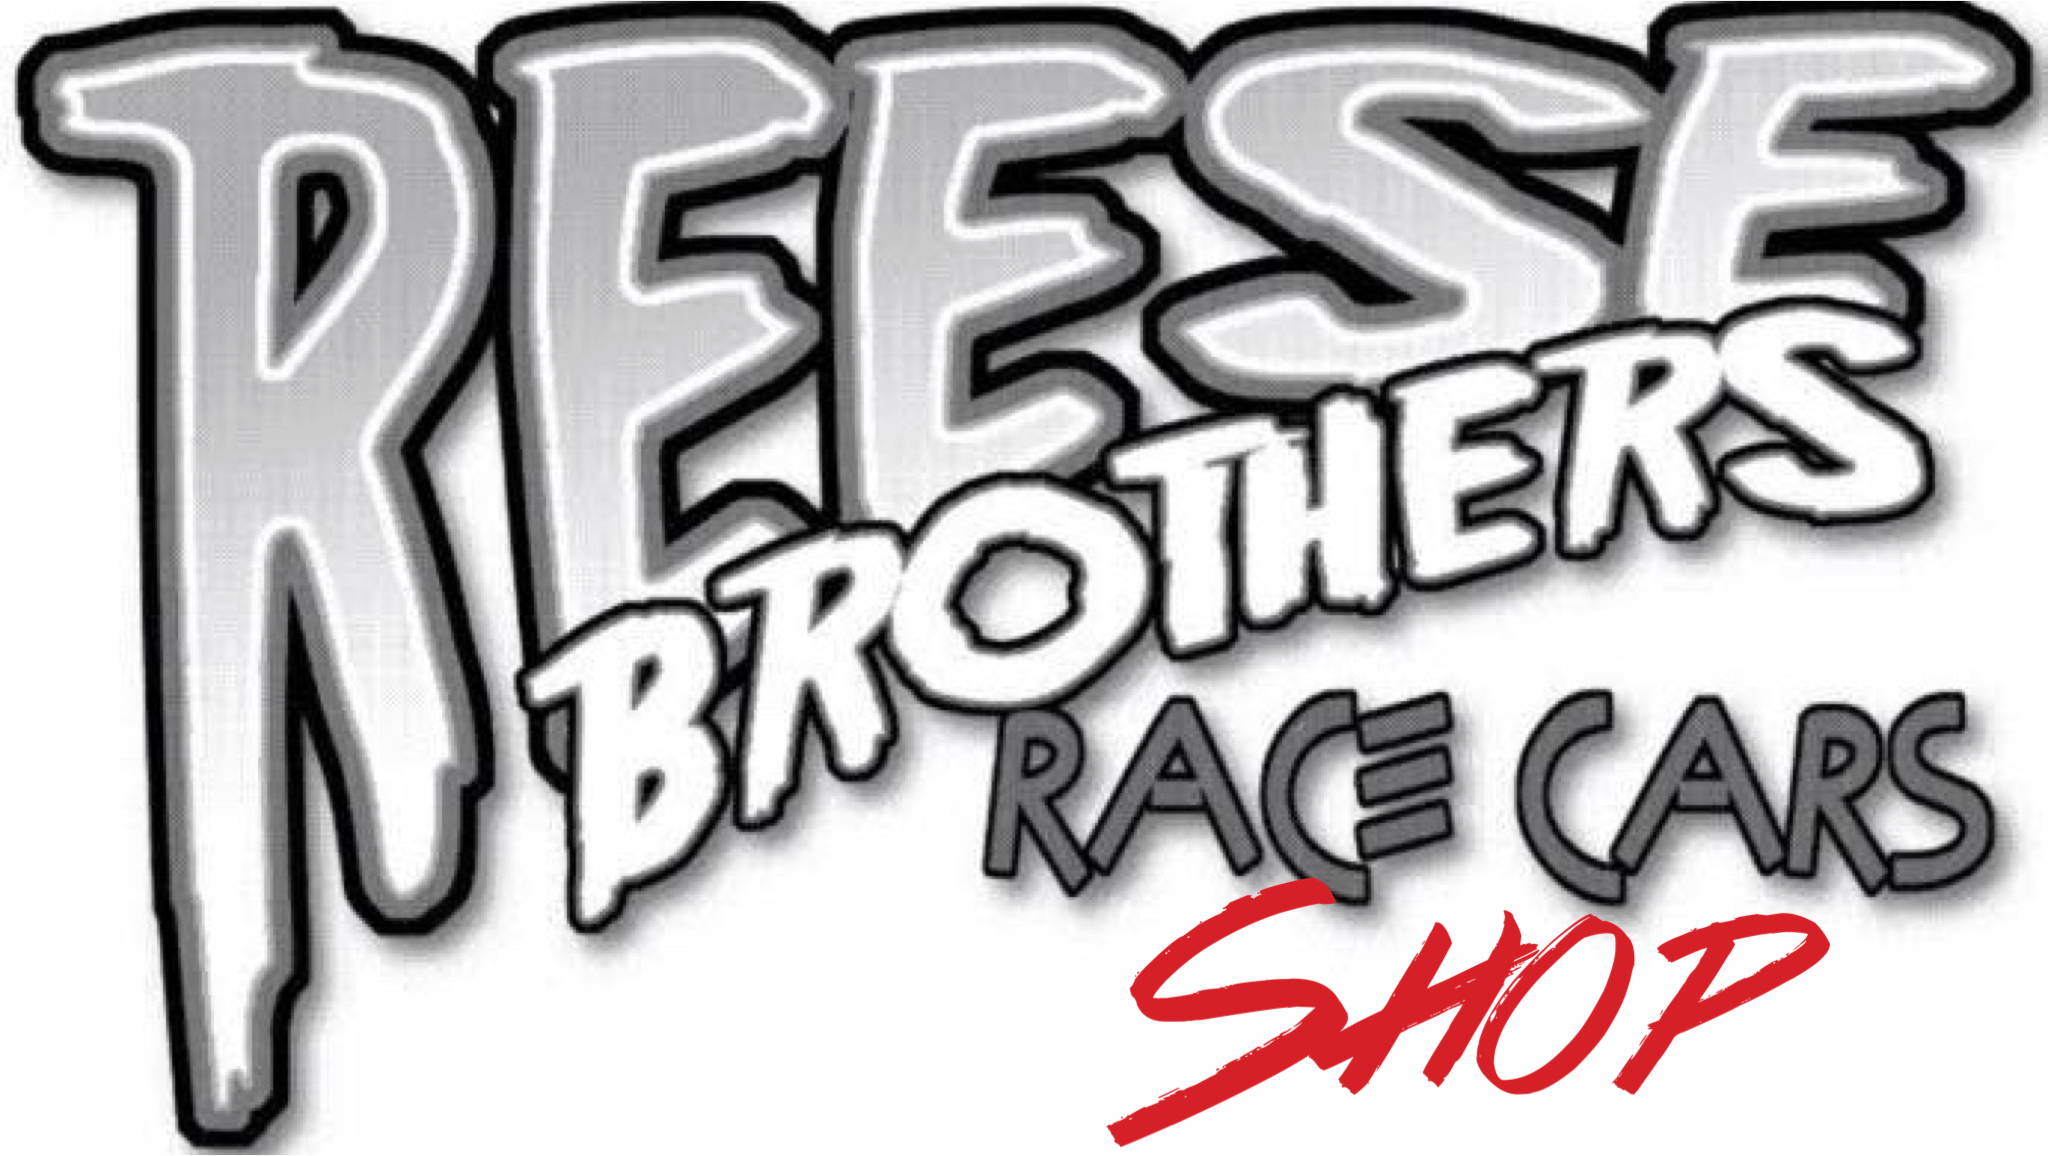 Reese Brothers Racecars's account image